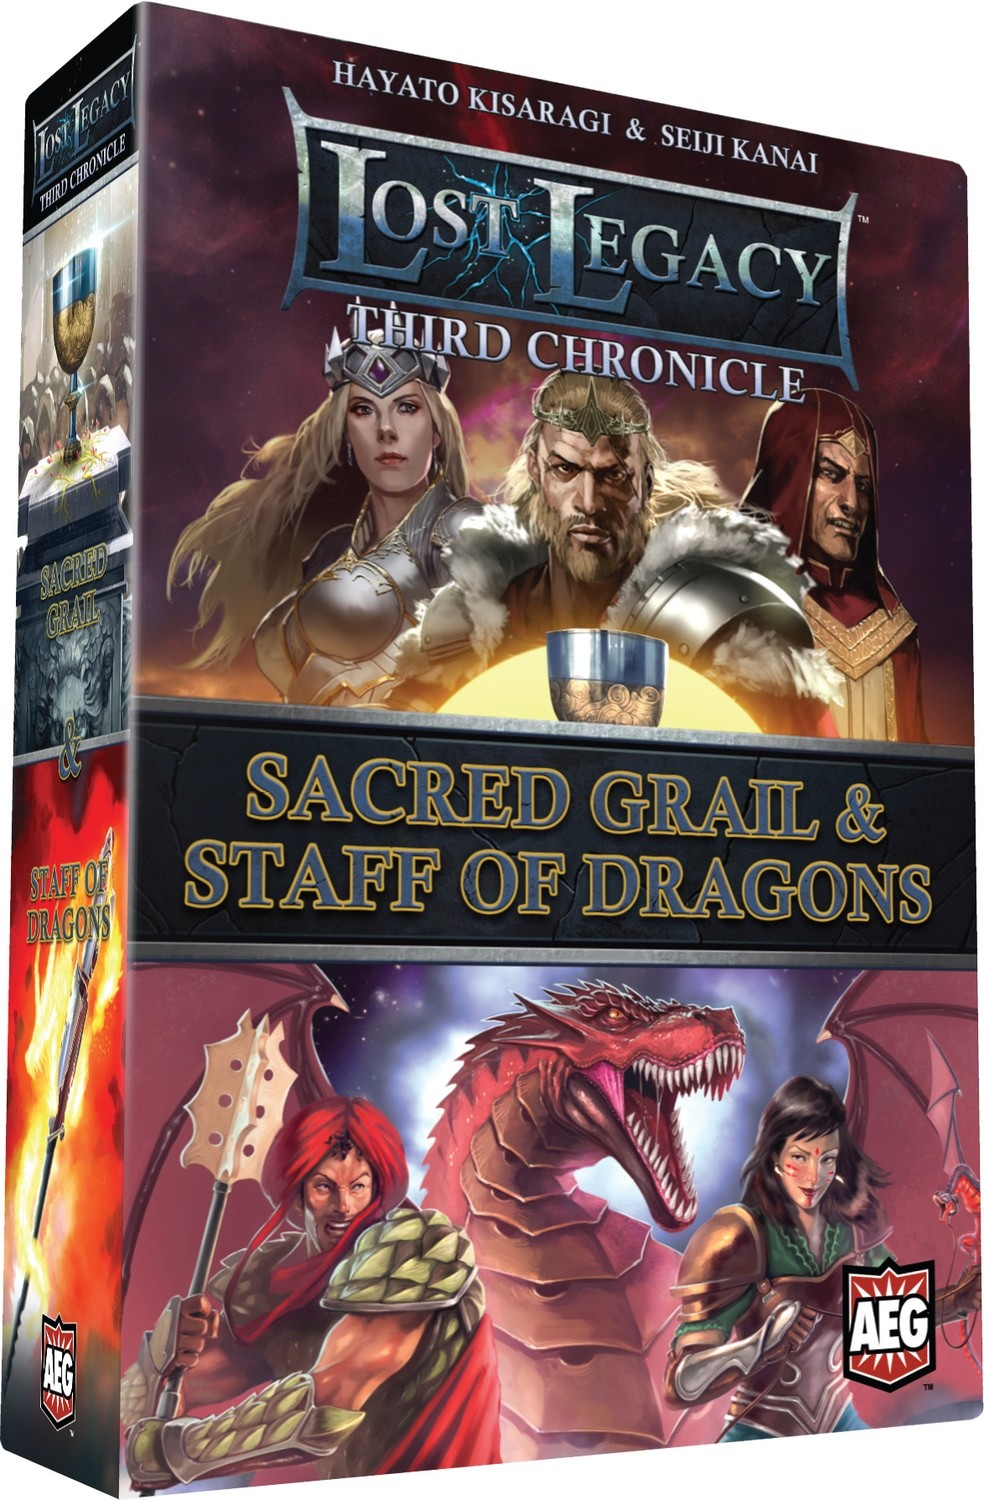 Lost Legacy: Third Chronicle: Sacred Grail & Staff of Dragons